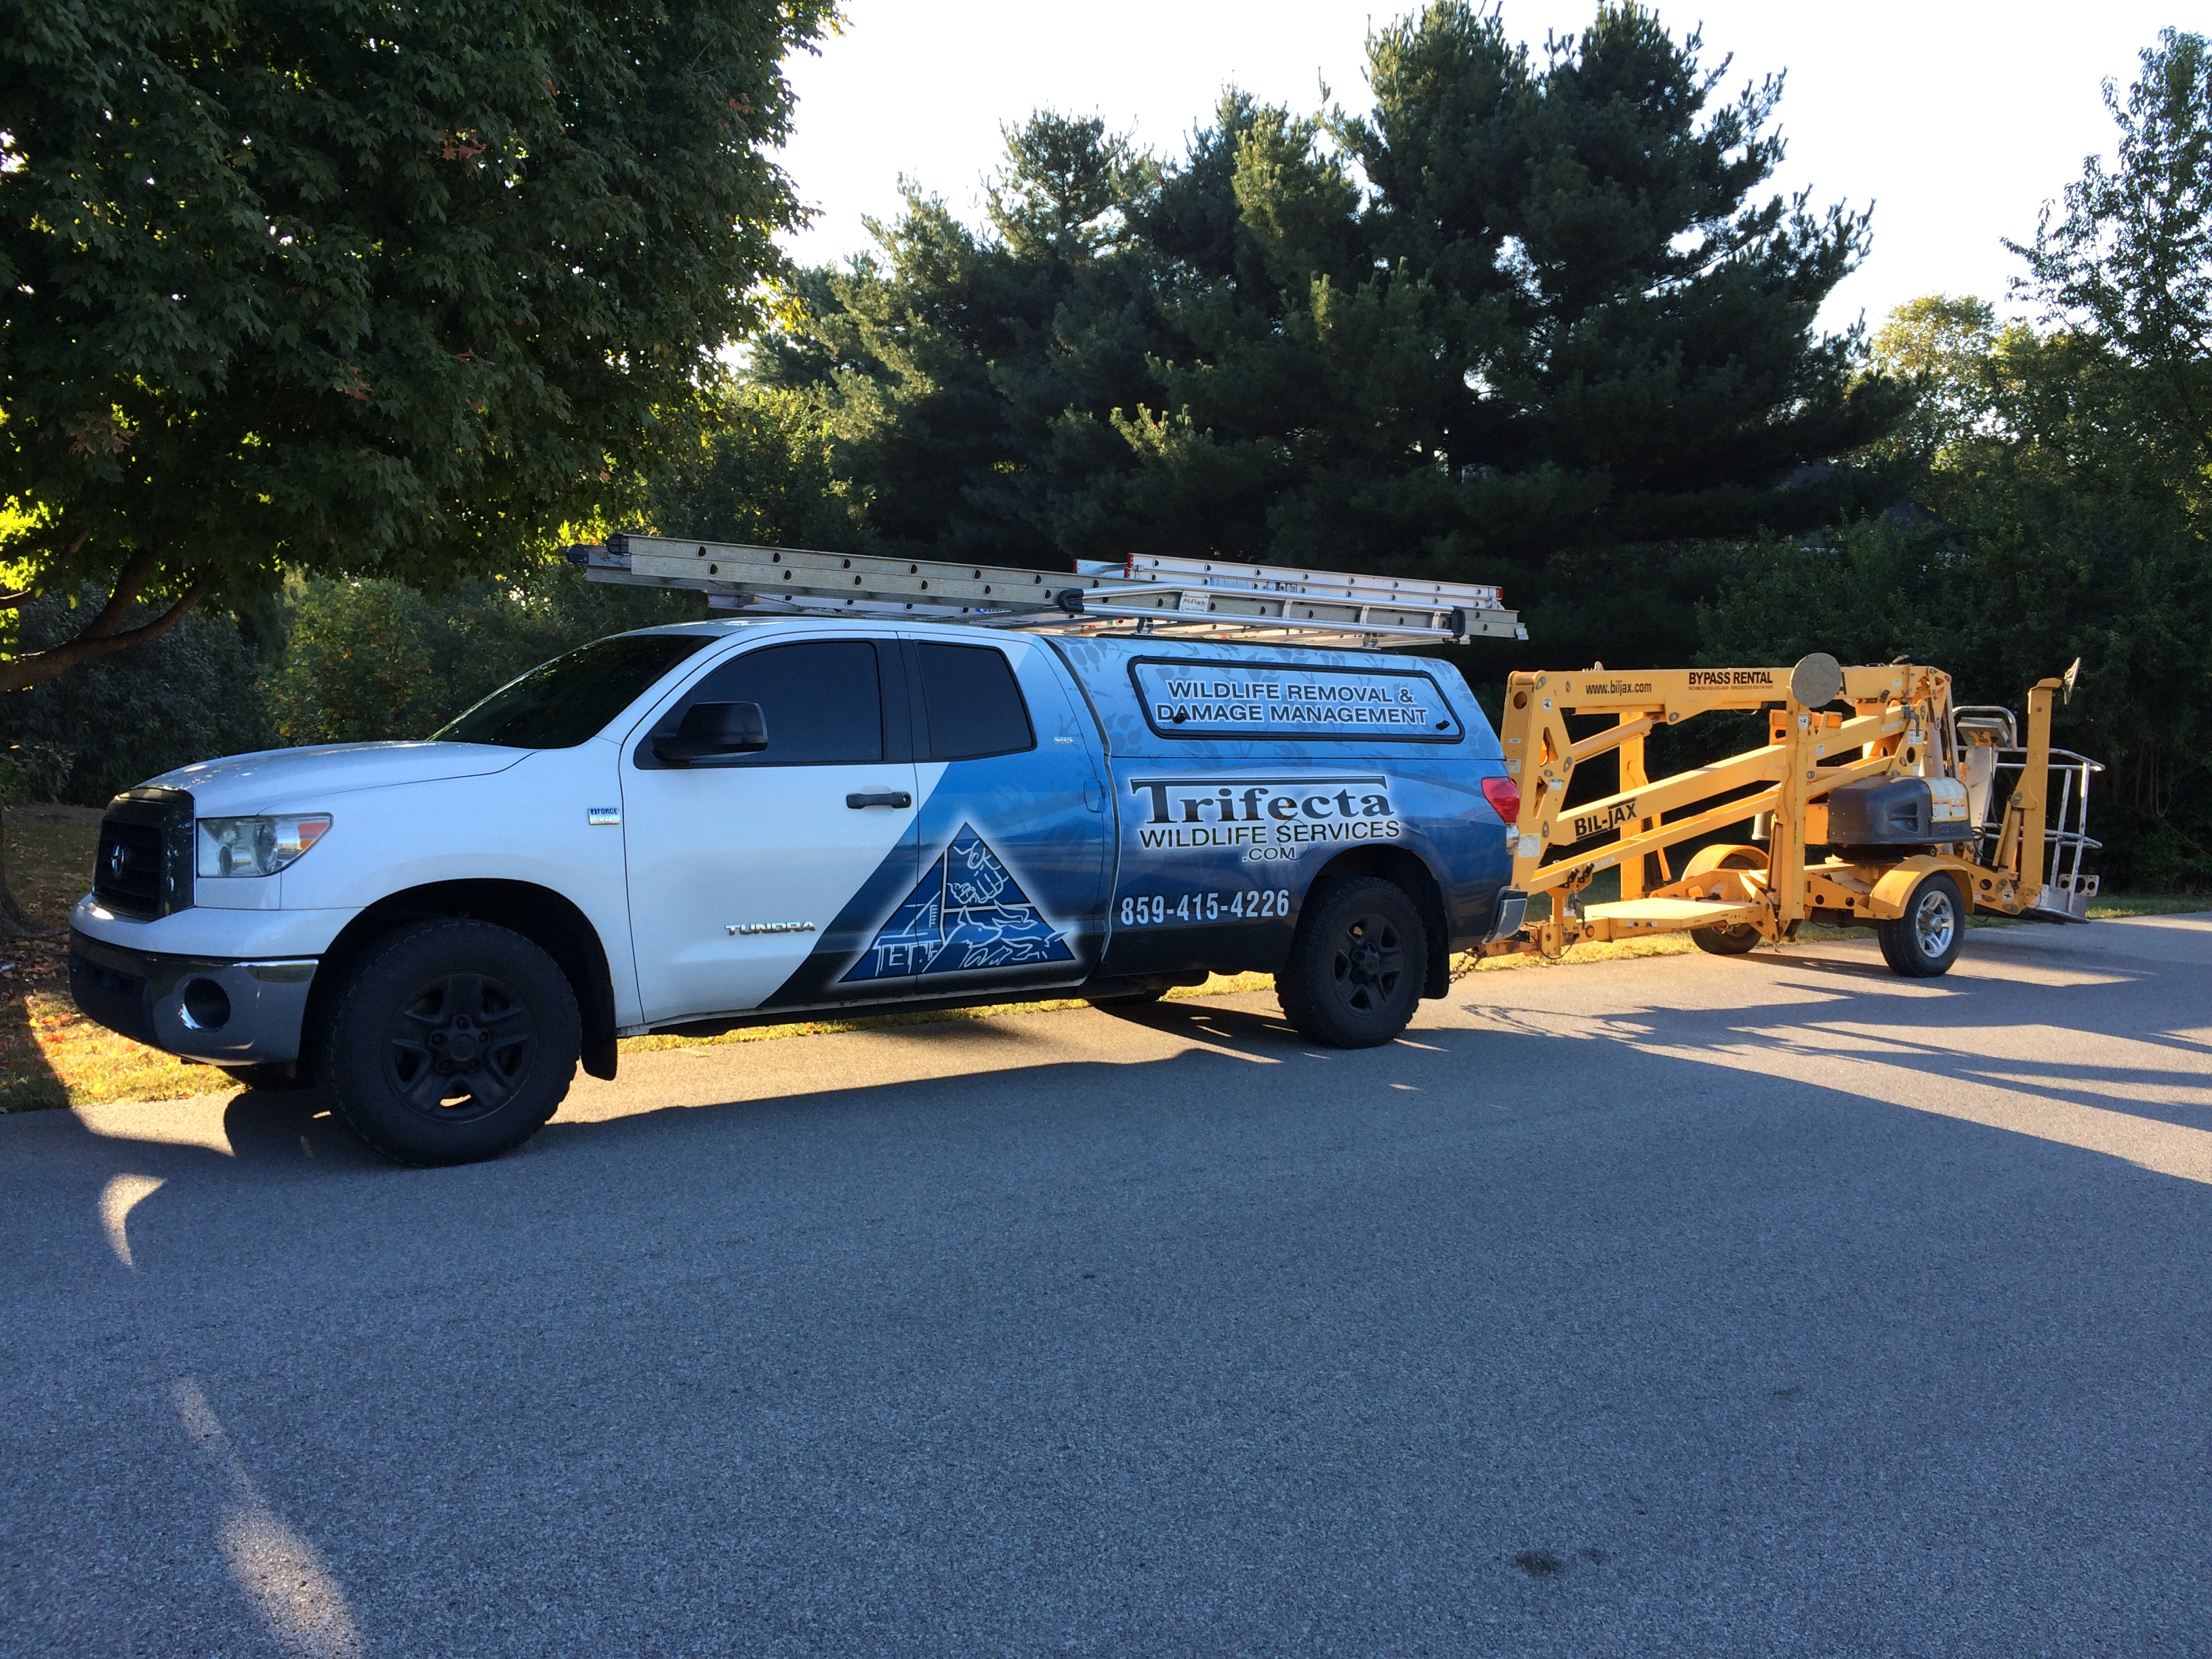 Trifecta Wildlife truck with aerial lift in tow